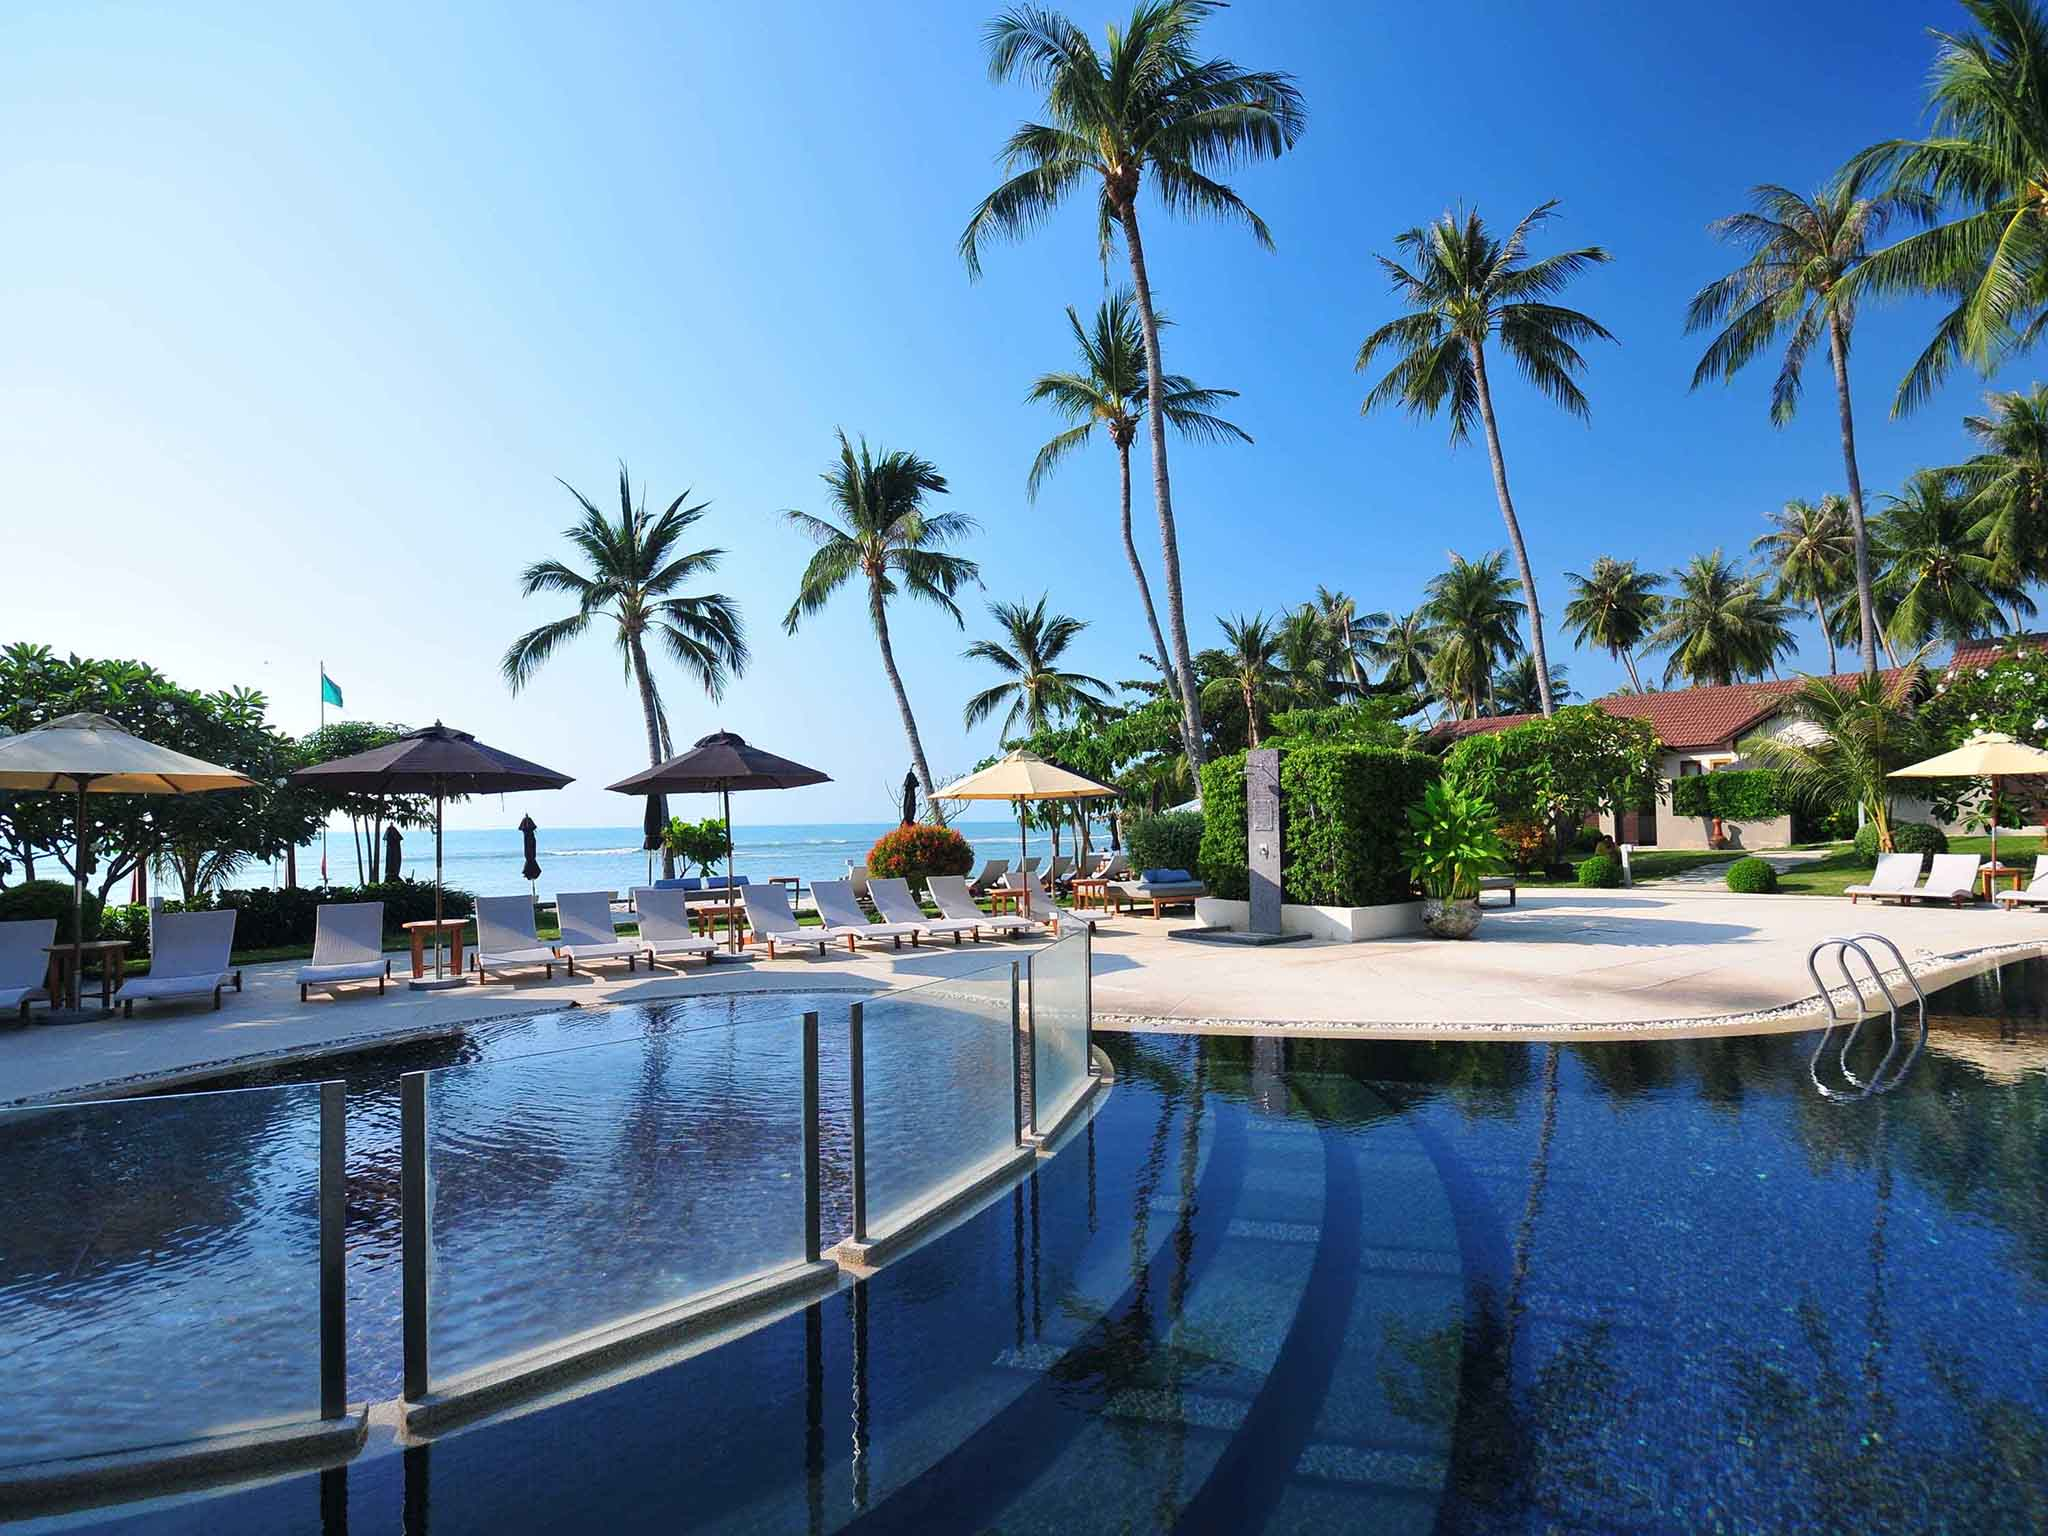 Hotel - Mercure Koh Samui Beach Resort